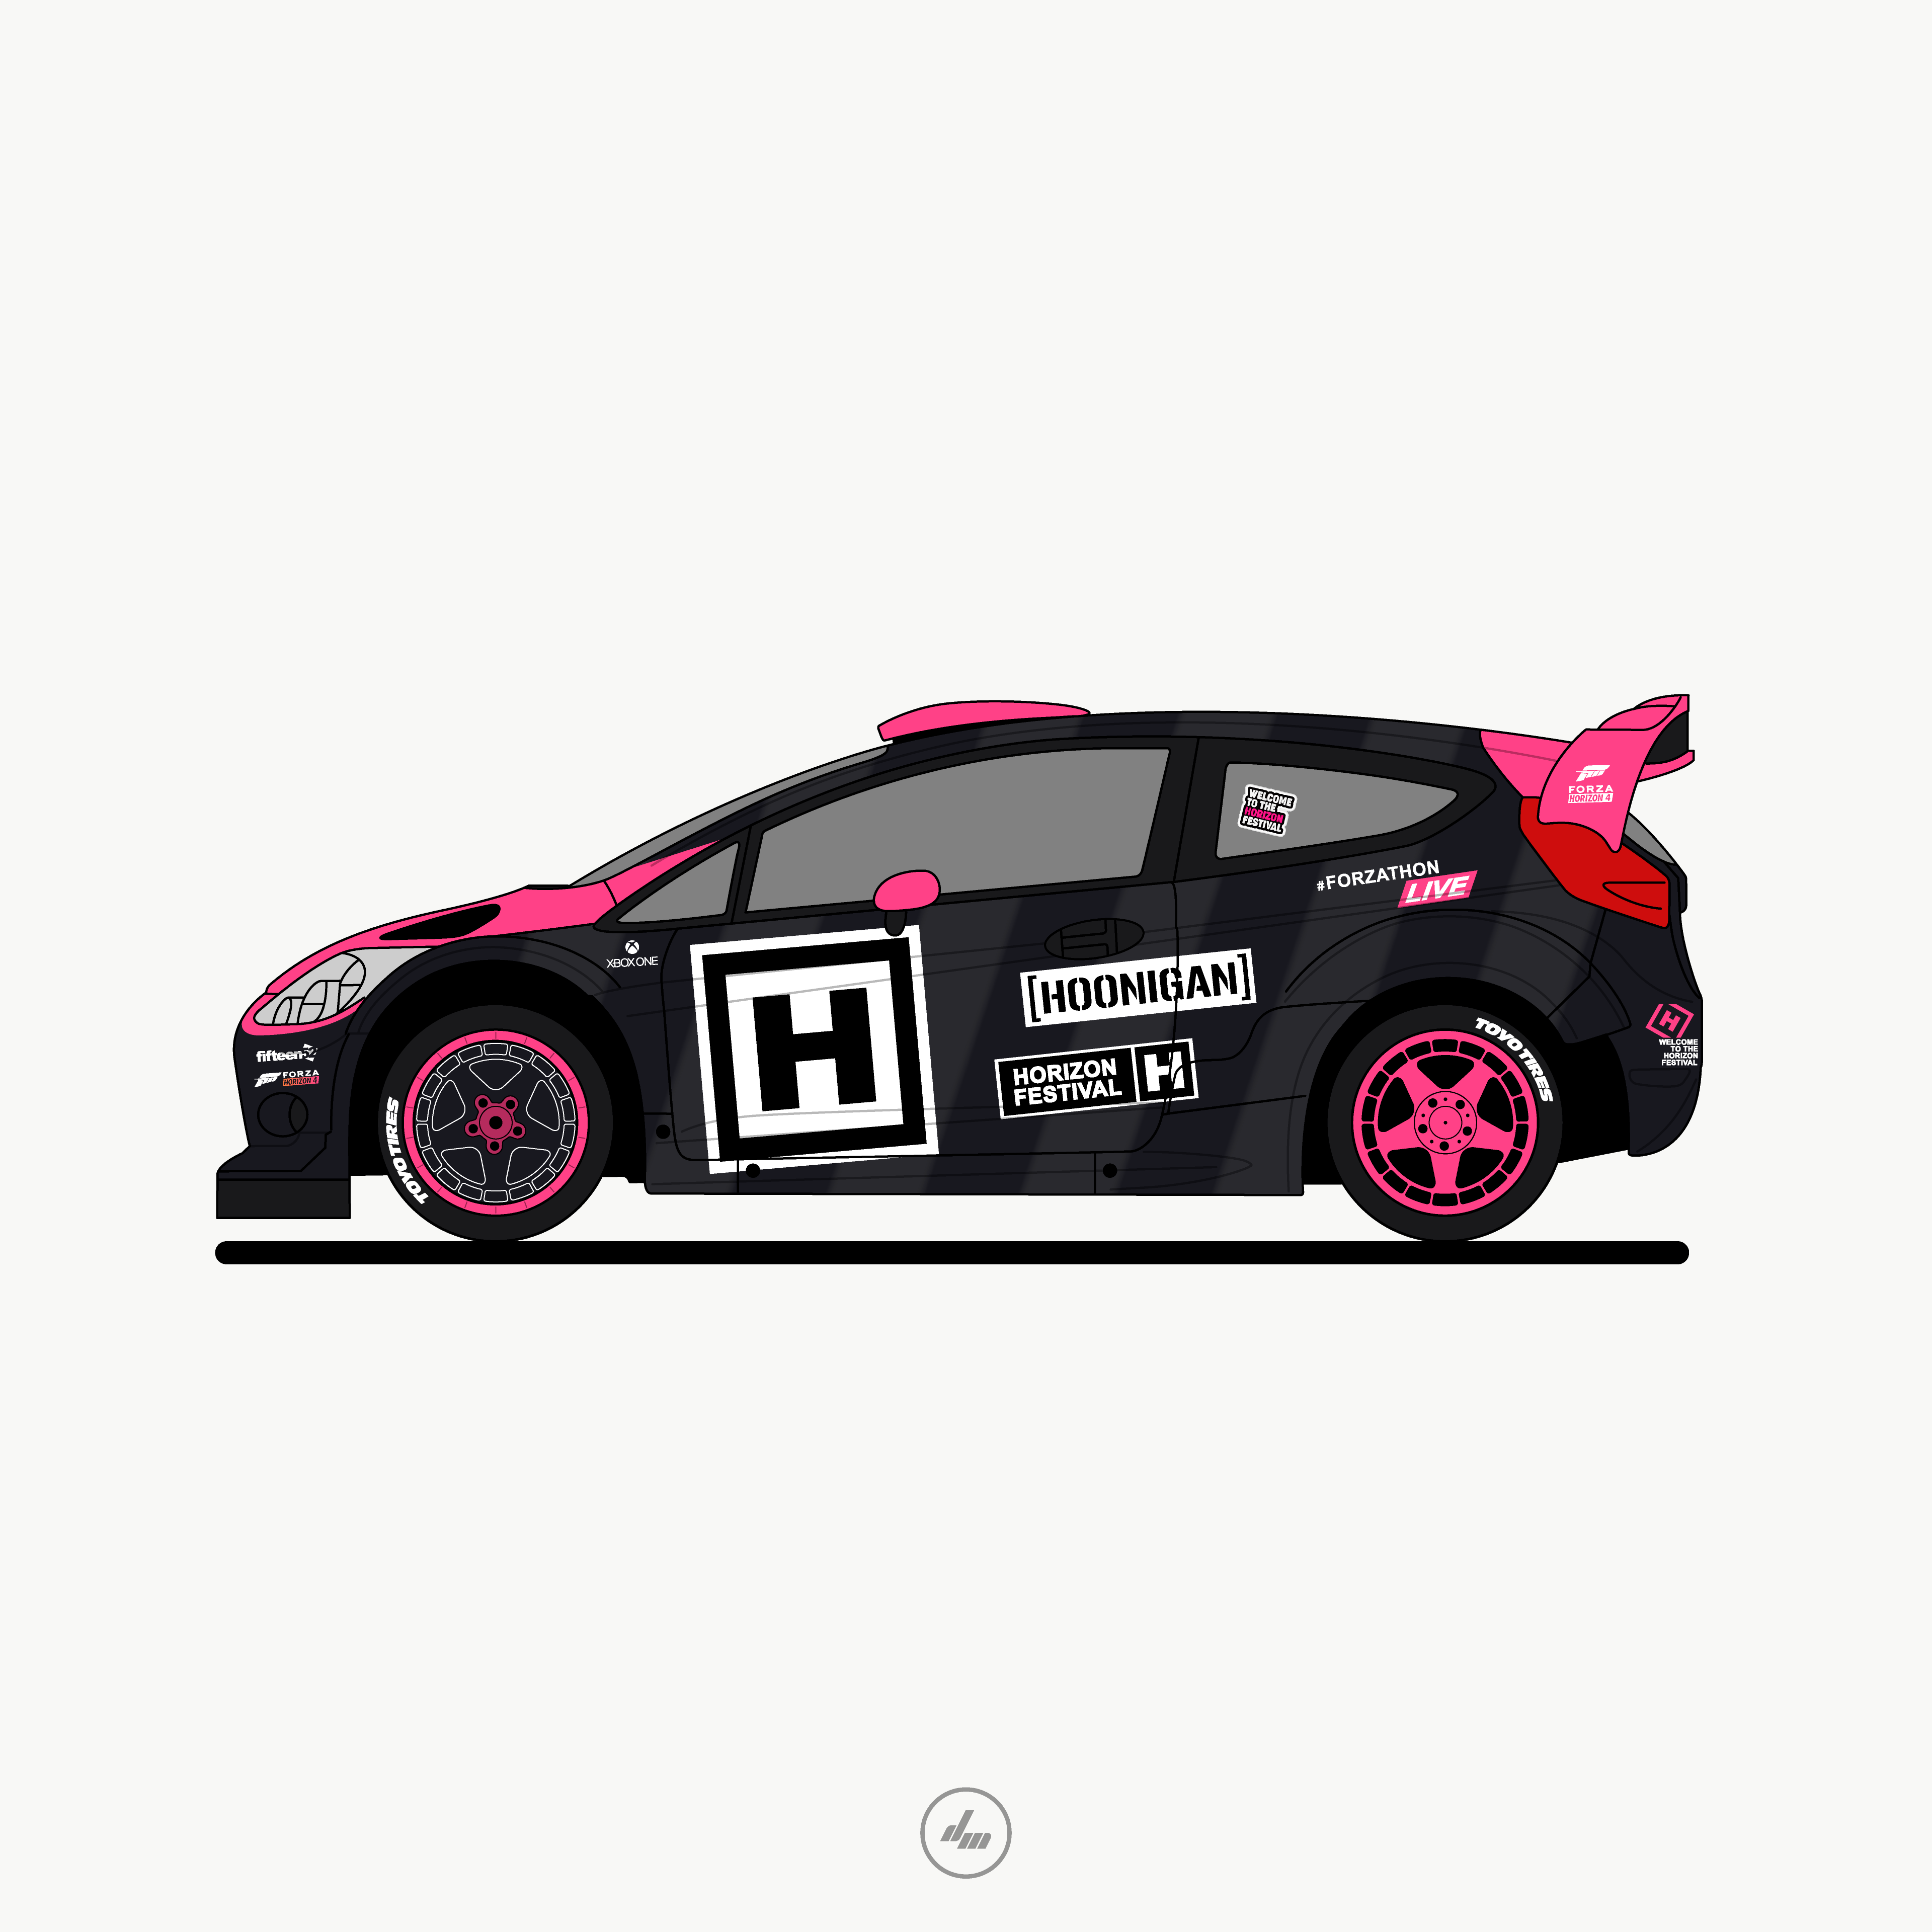 Check Out This Behance Project Ford Fiesta Rx Livery Https Www Behance Net Gallery 76109491 Ford Fiesta Rx Livery Ford Fiesta Ford Automotive Design